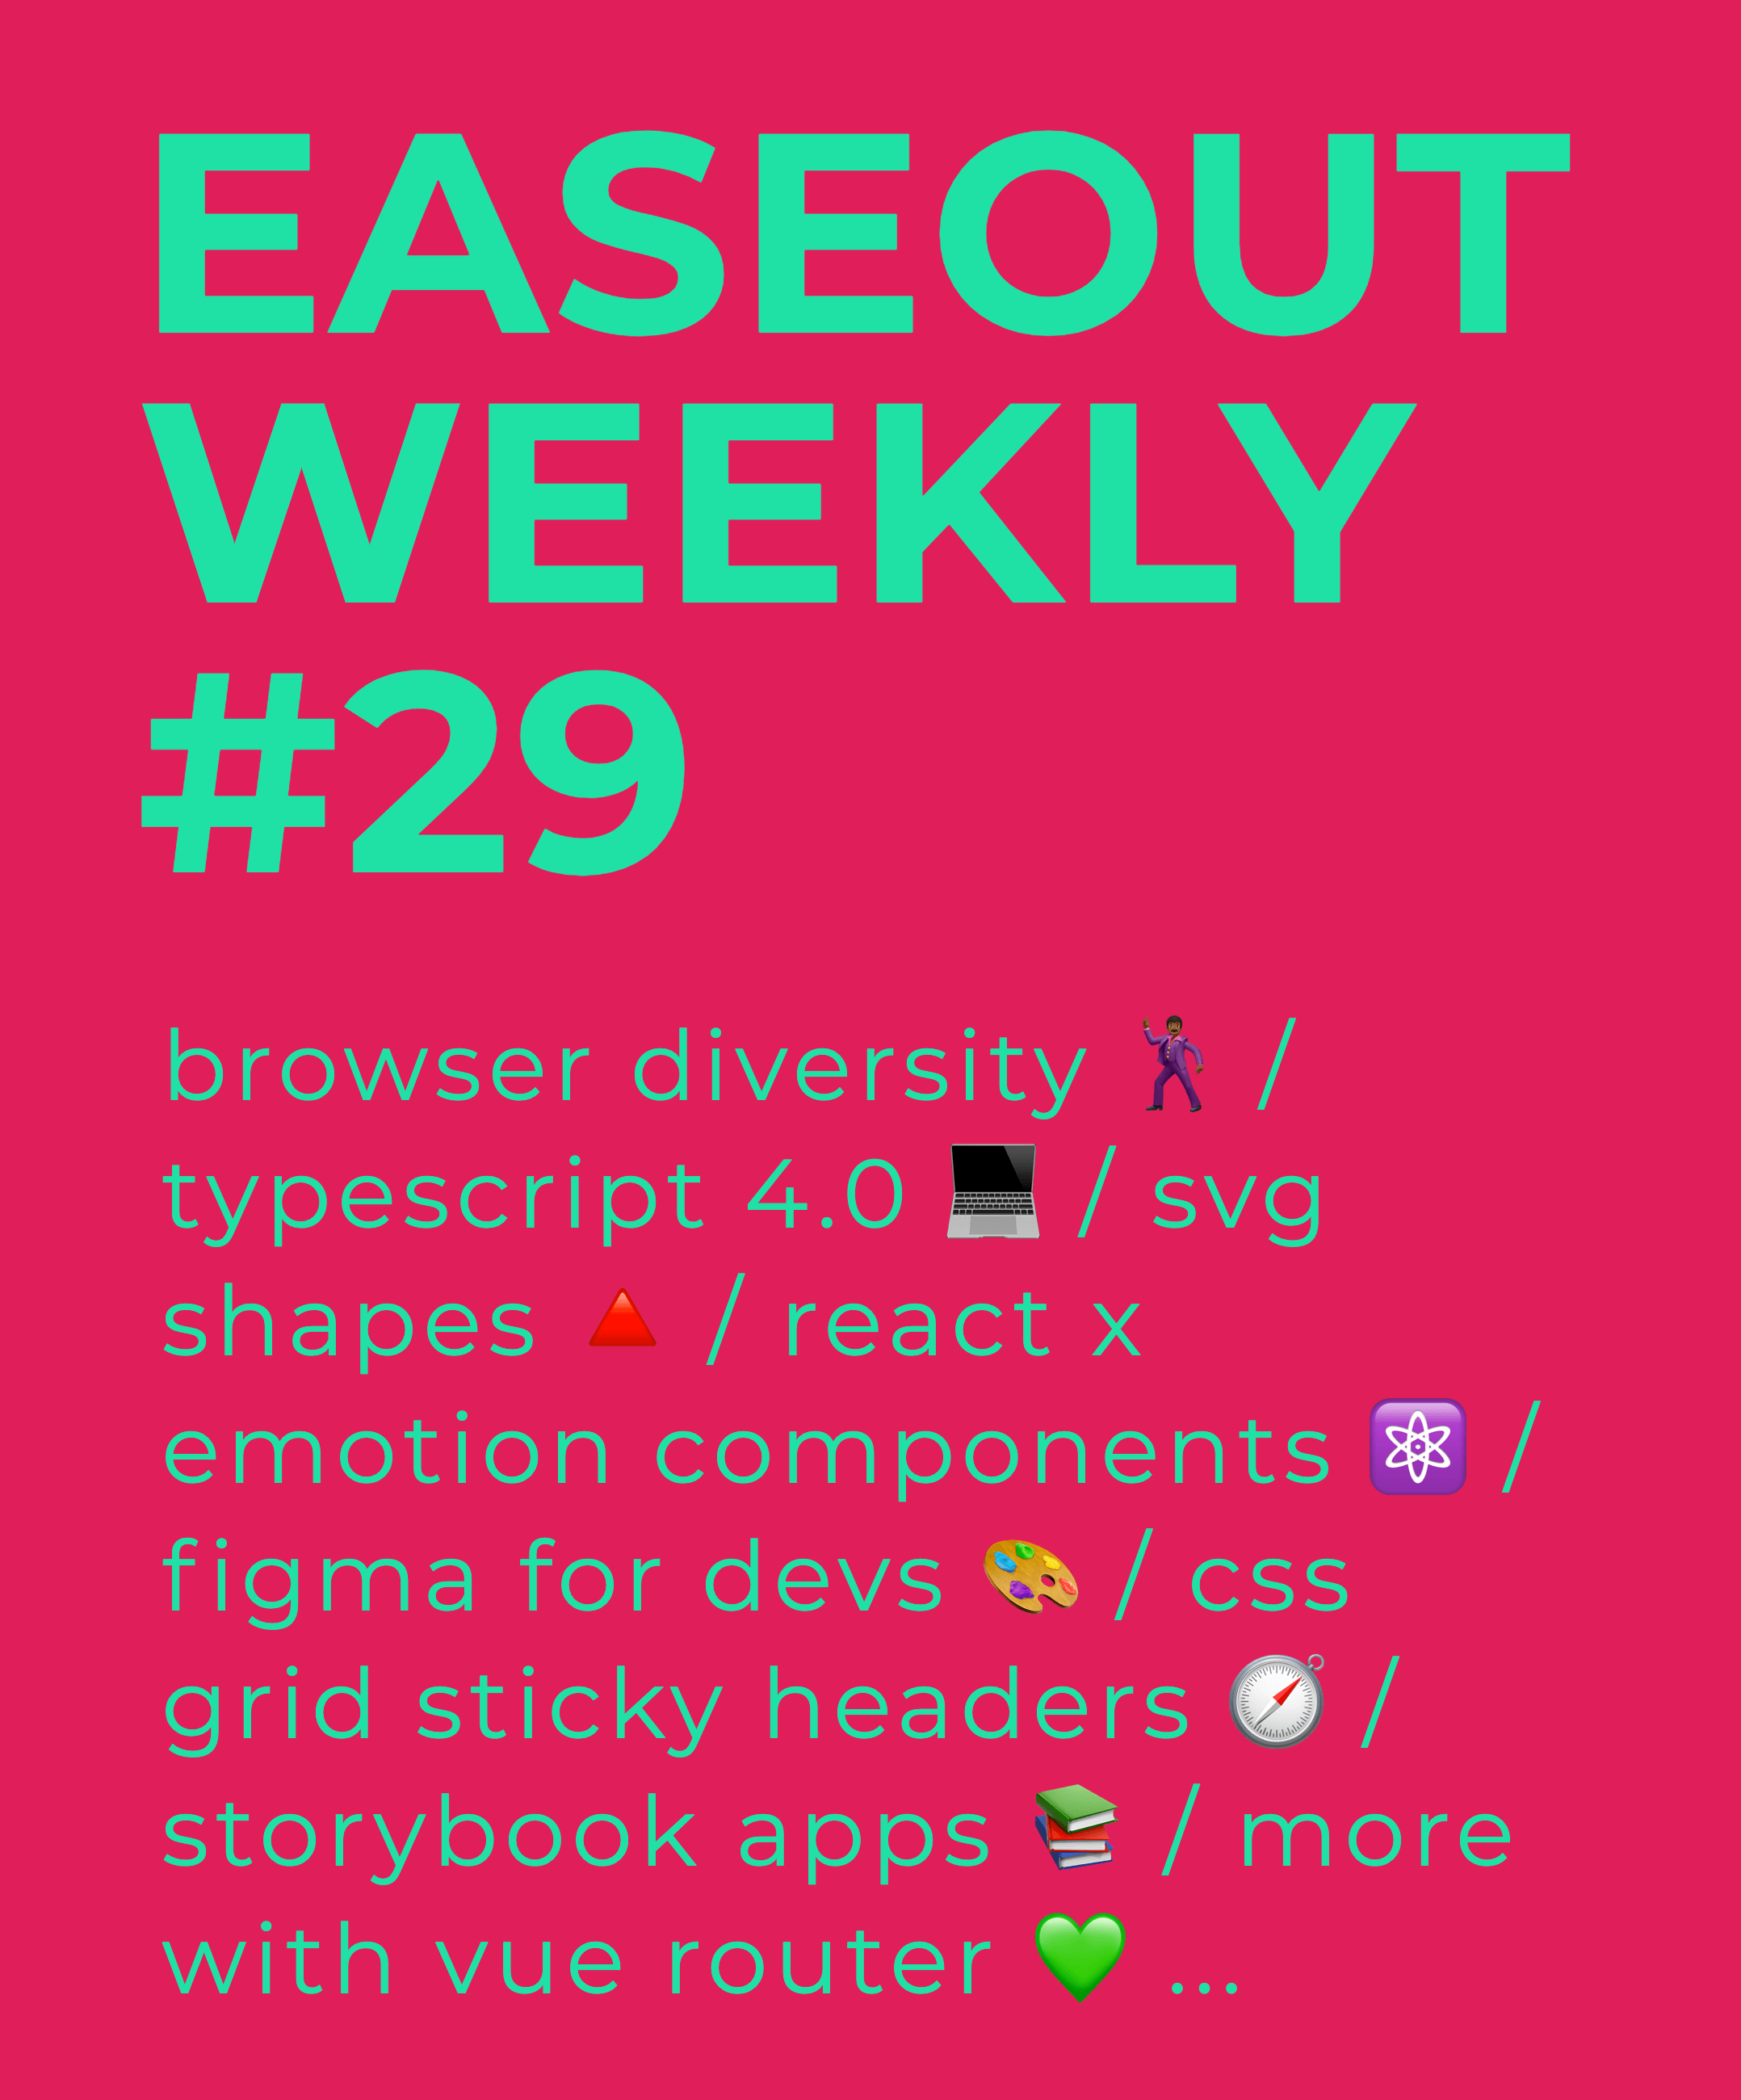 Easeout Weekly #29